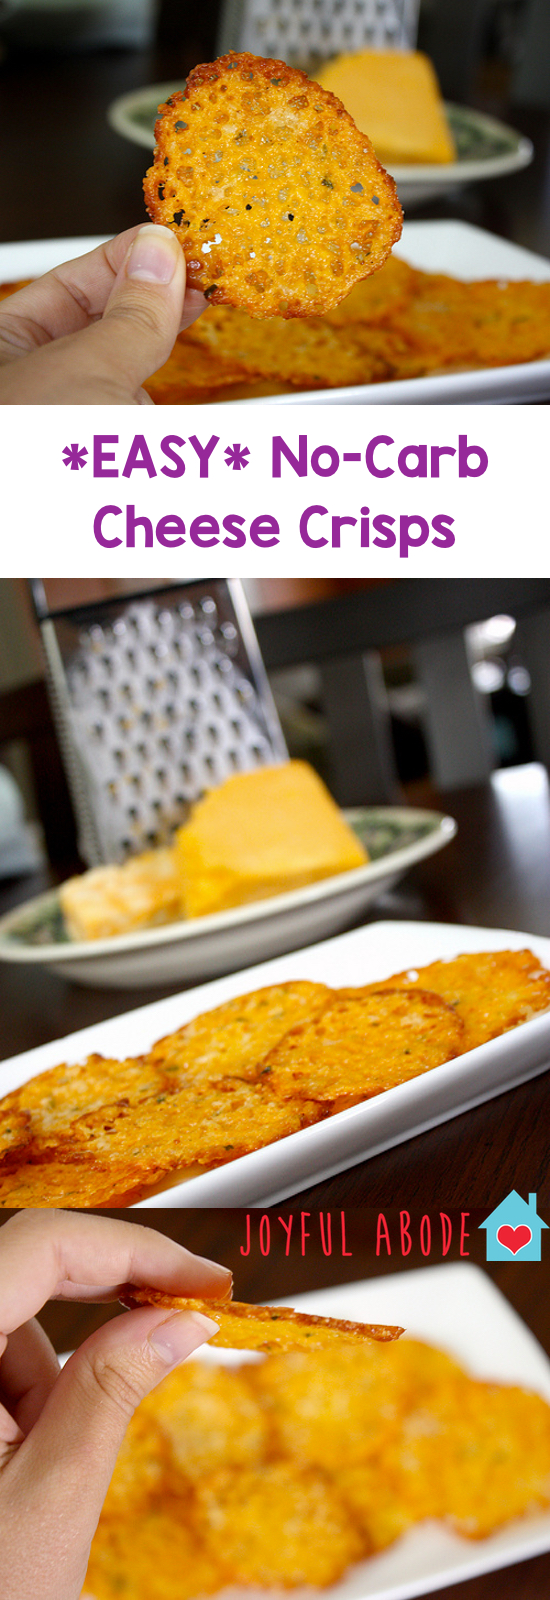 Homemade baked cheese crisps for Atkins cuisine baking mix